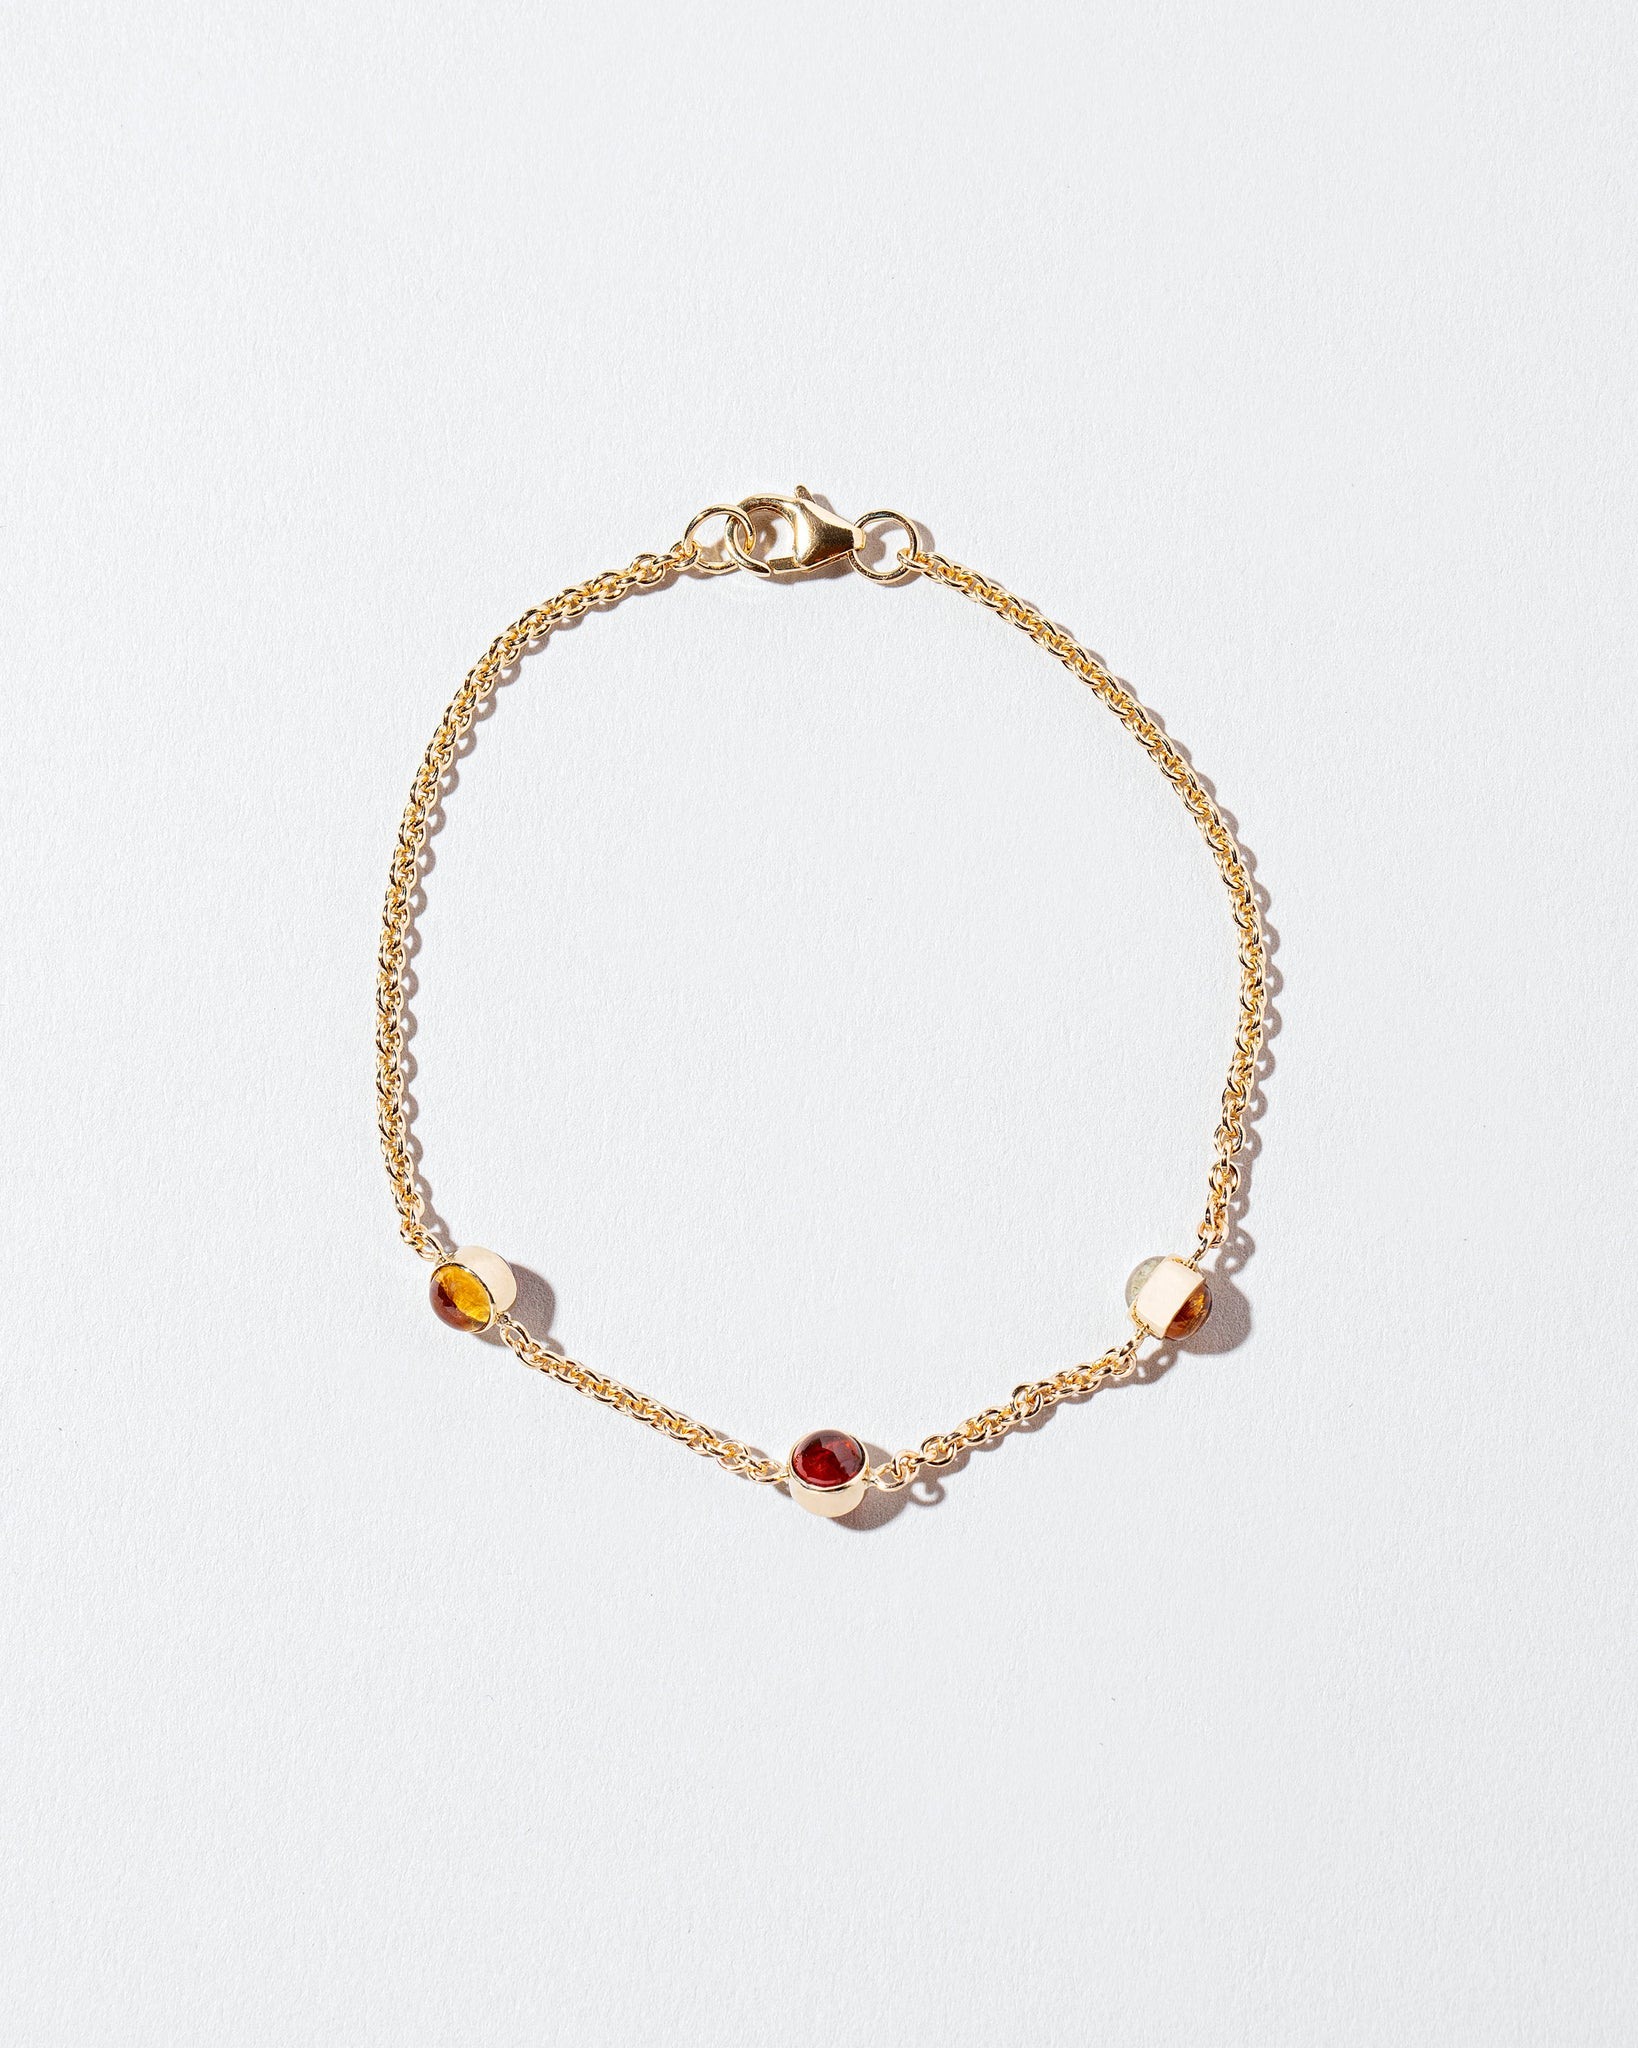 Birthstone Bracelet lying flat and clasped